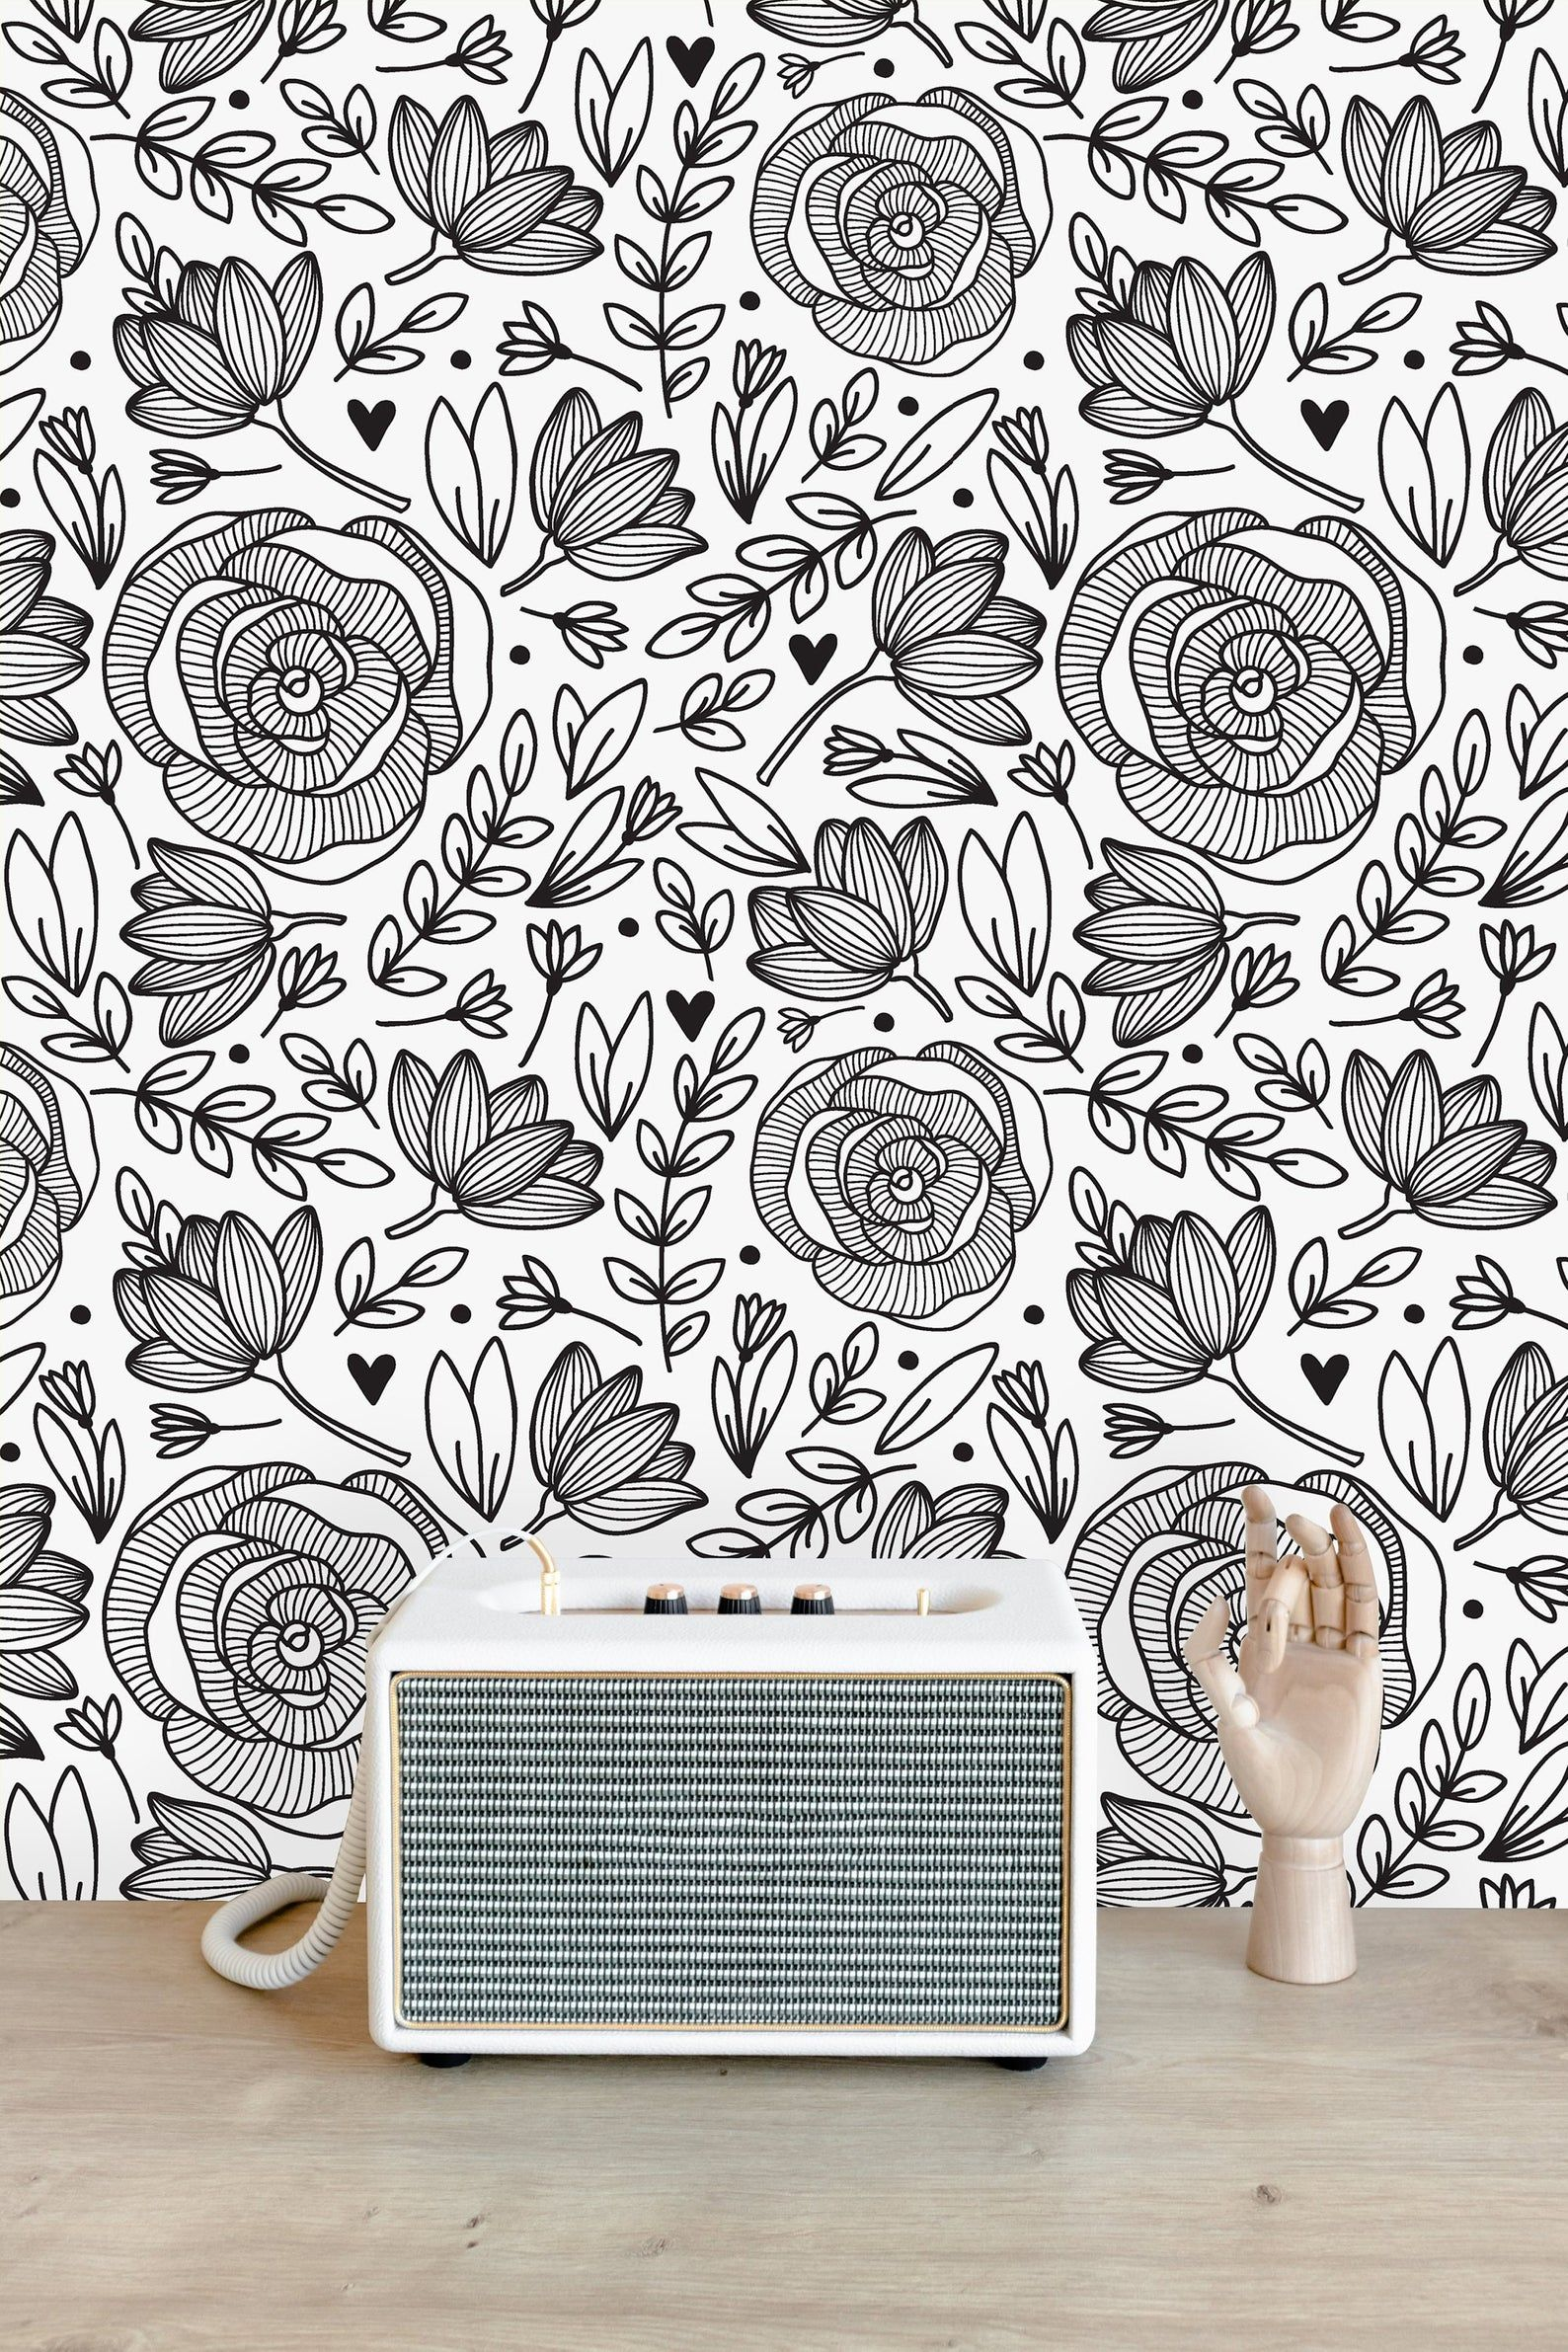 Black And White Floral Removable Wallpaper Peel And Stick Etsy Wall Wallpaper Wall Murals Peel And Stick Wallpaper